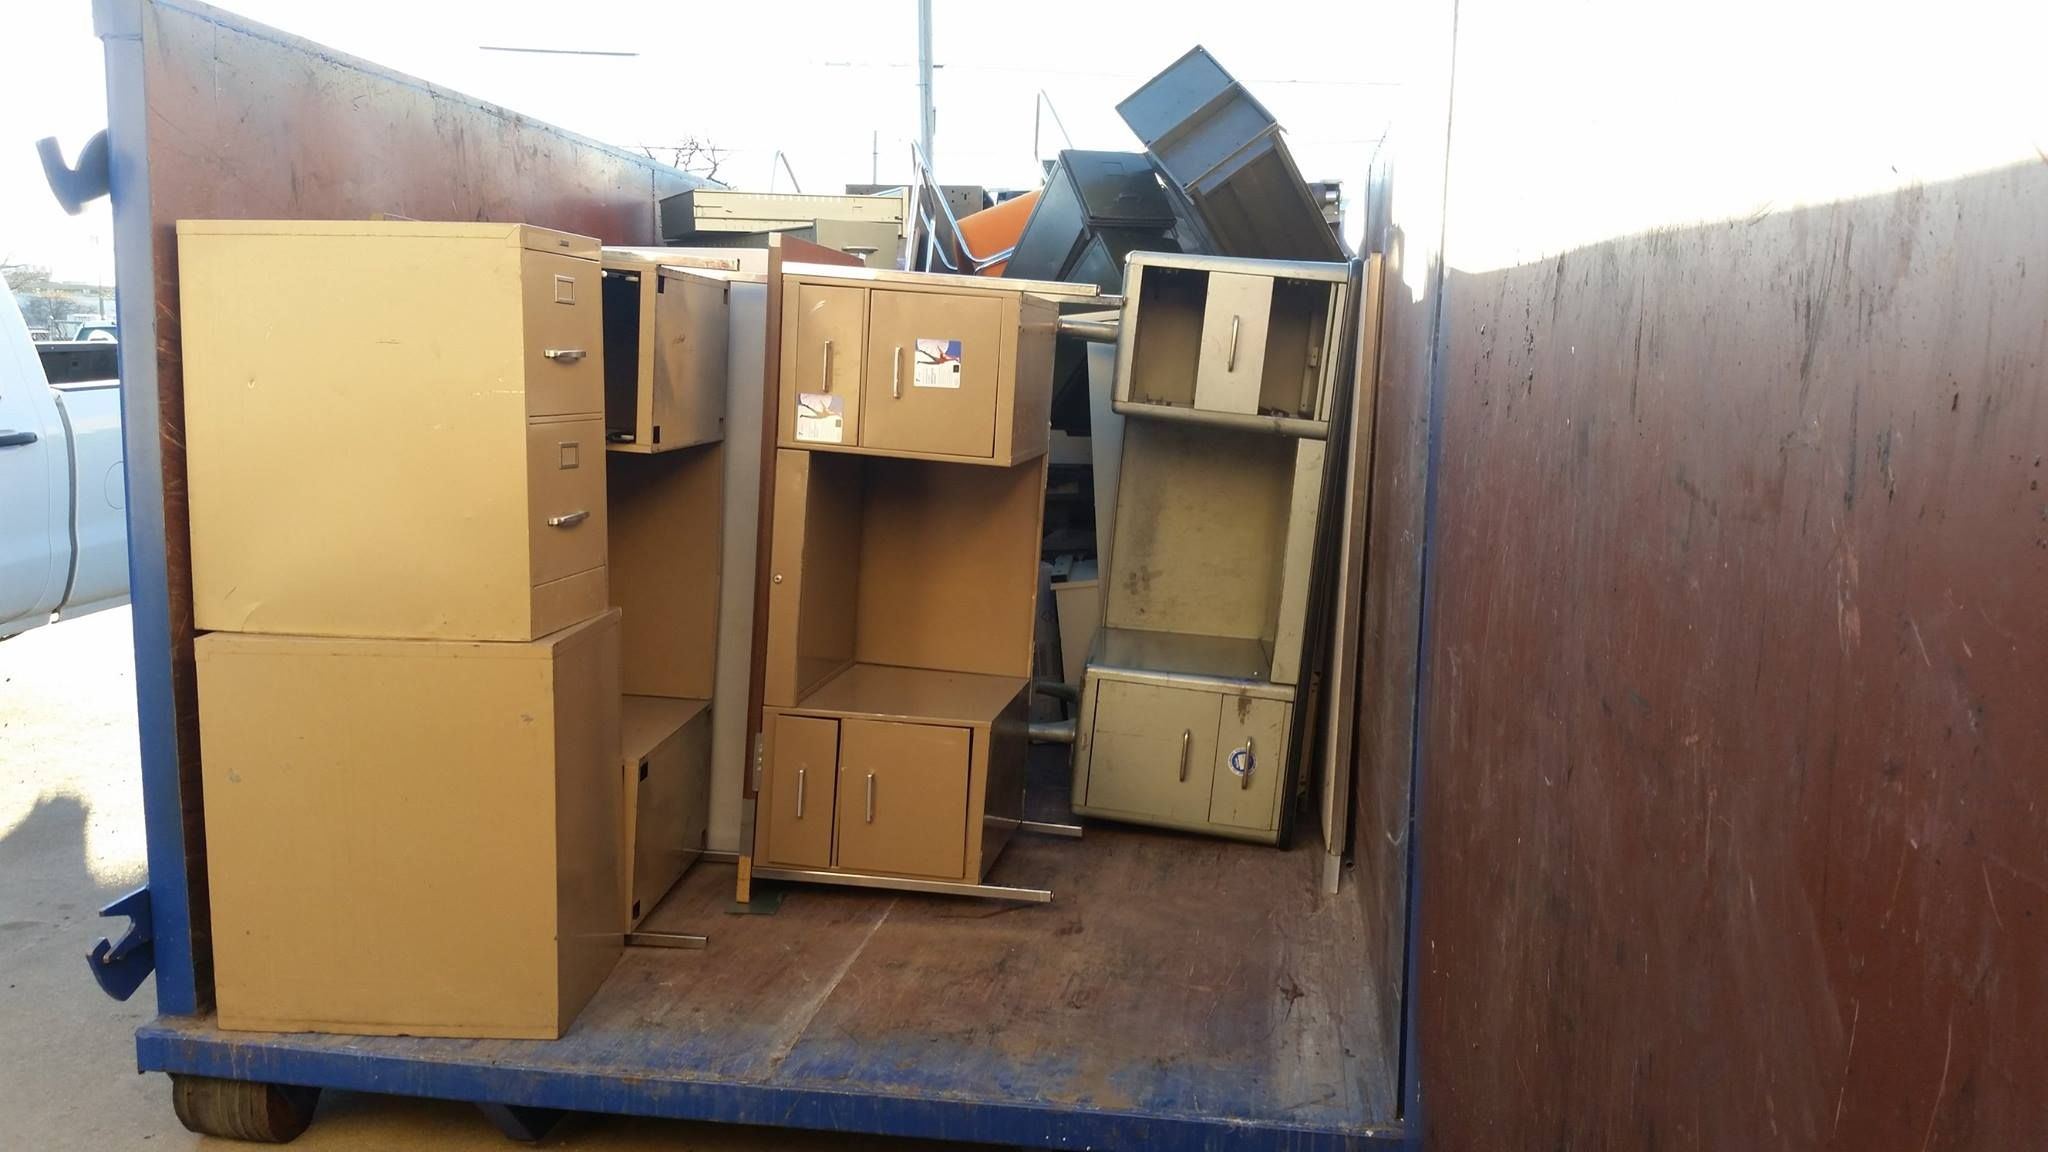 Do you have a pile of junk, debris, office equipment